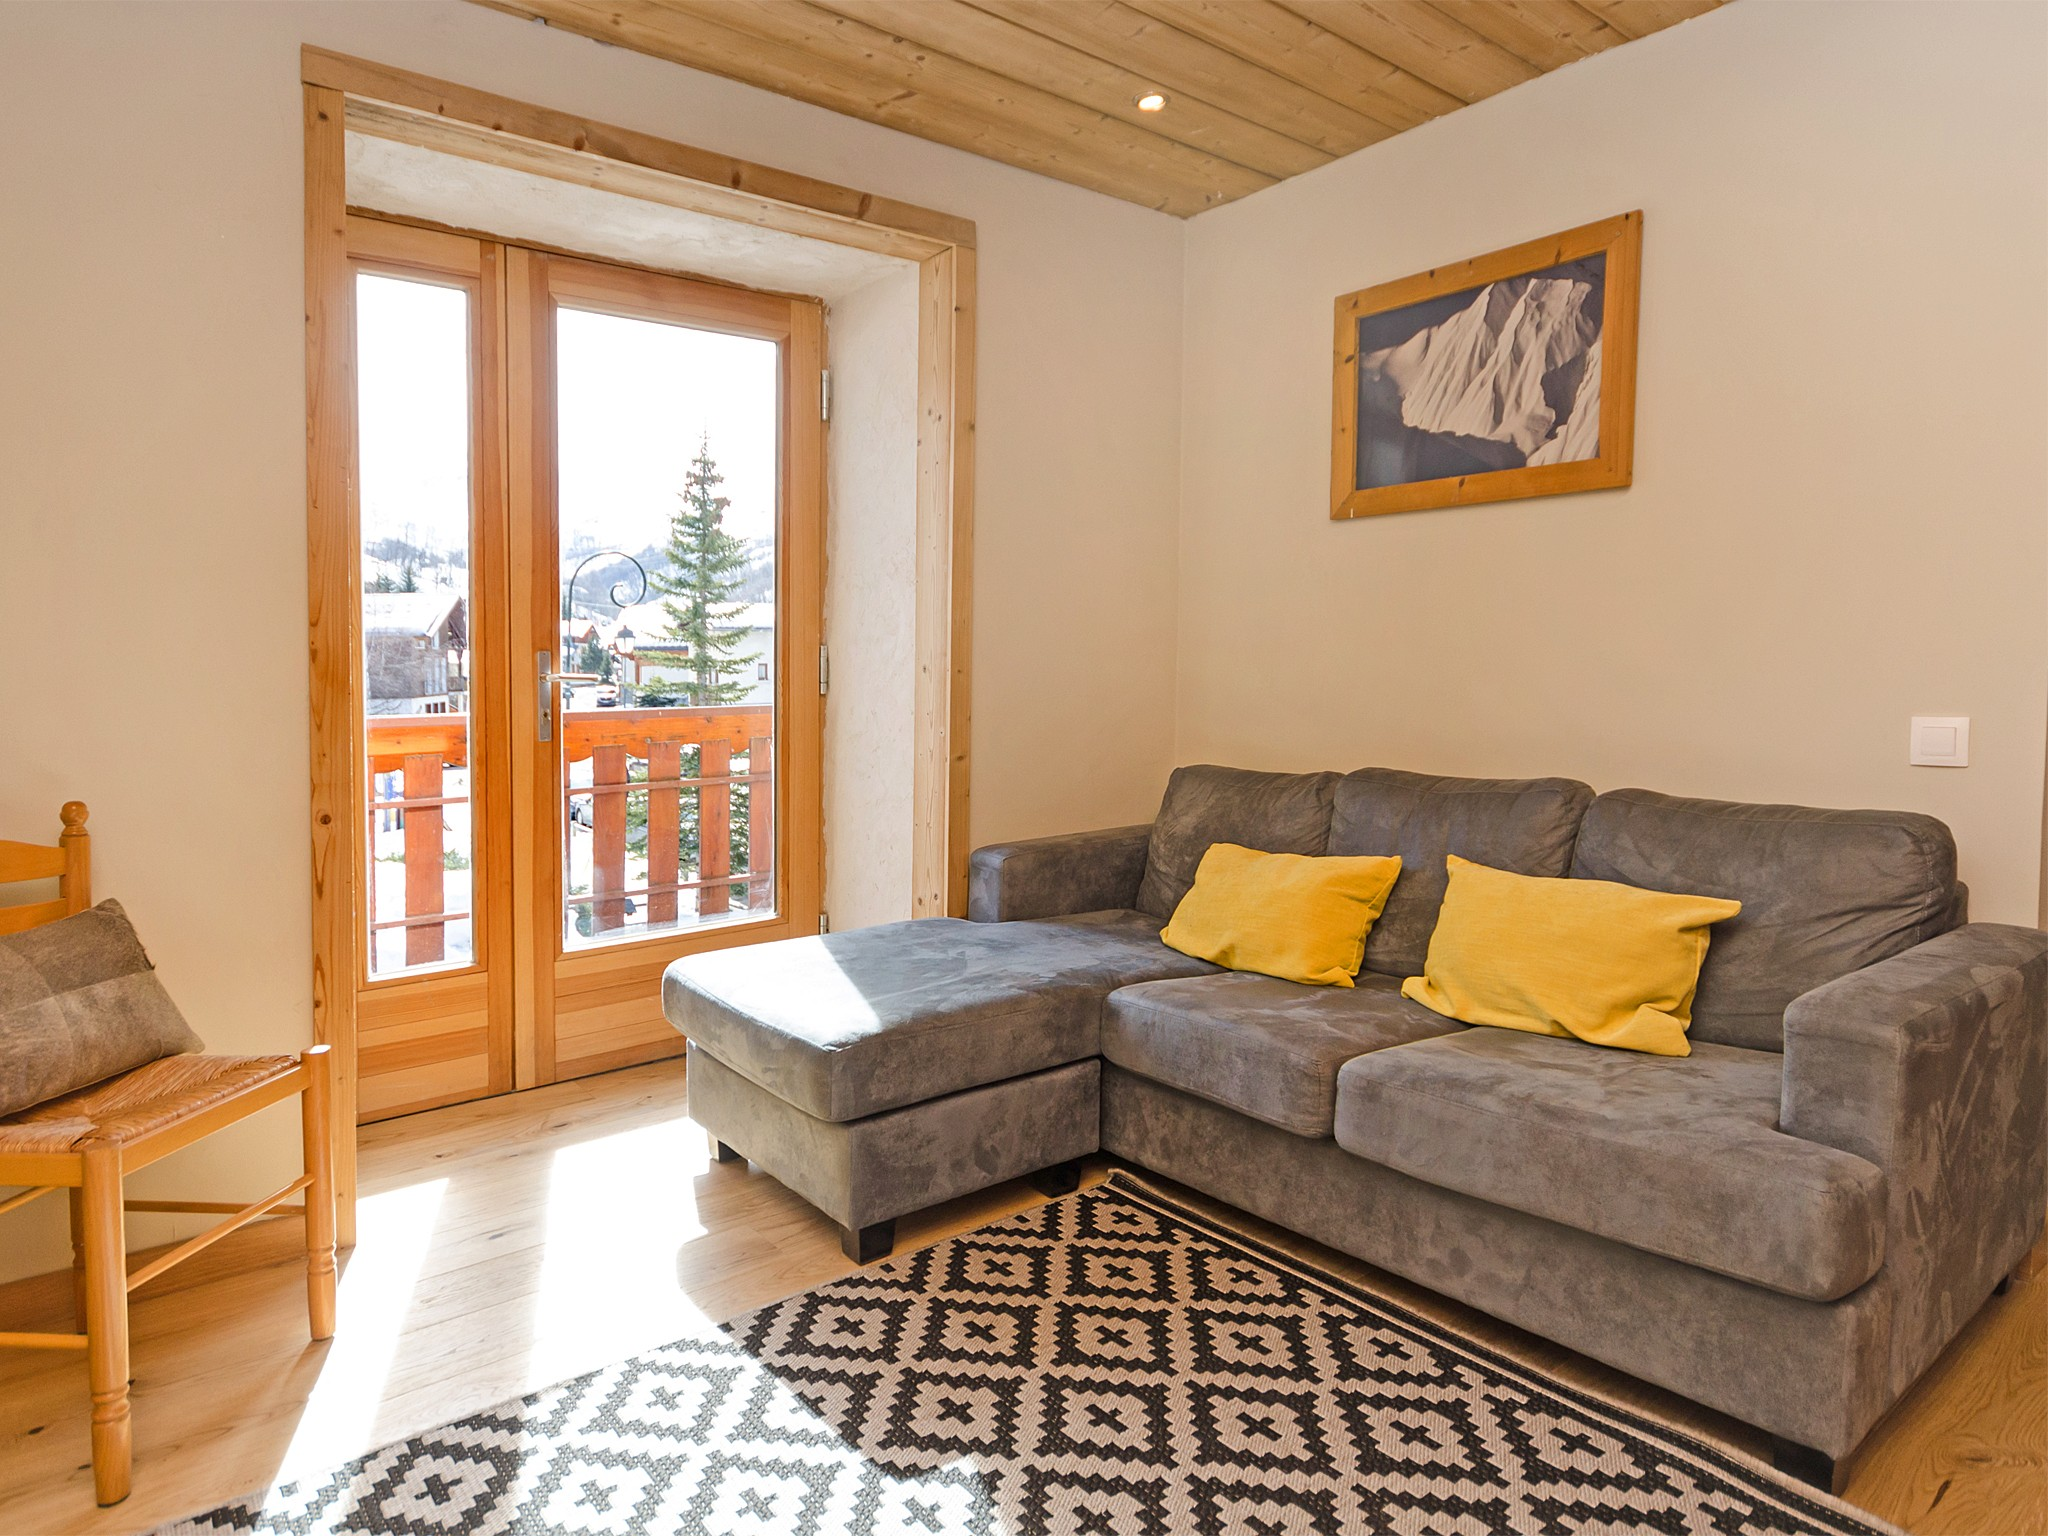 Chalet de Pierre - living room